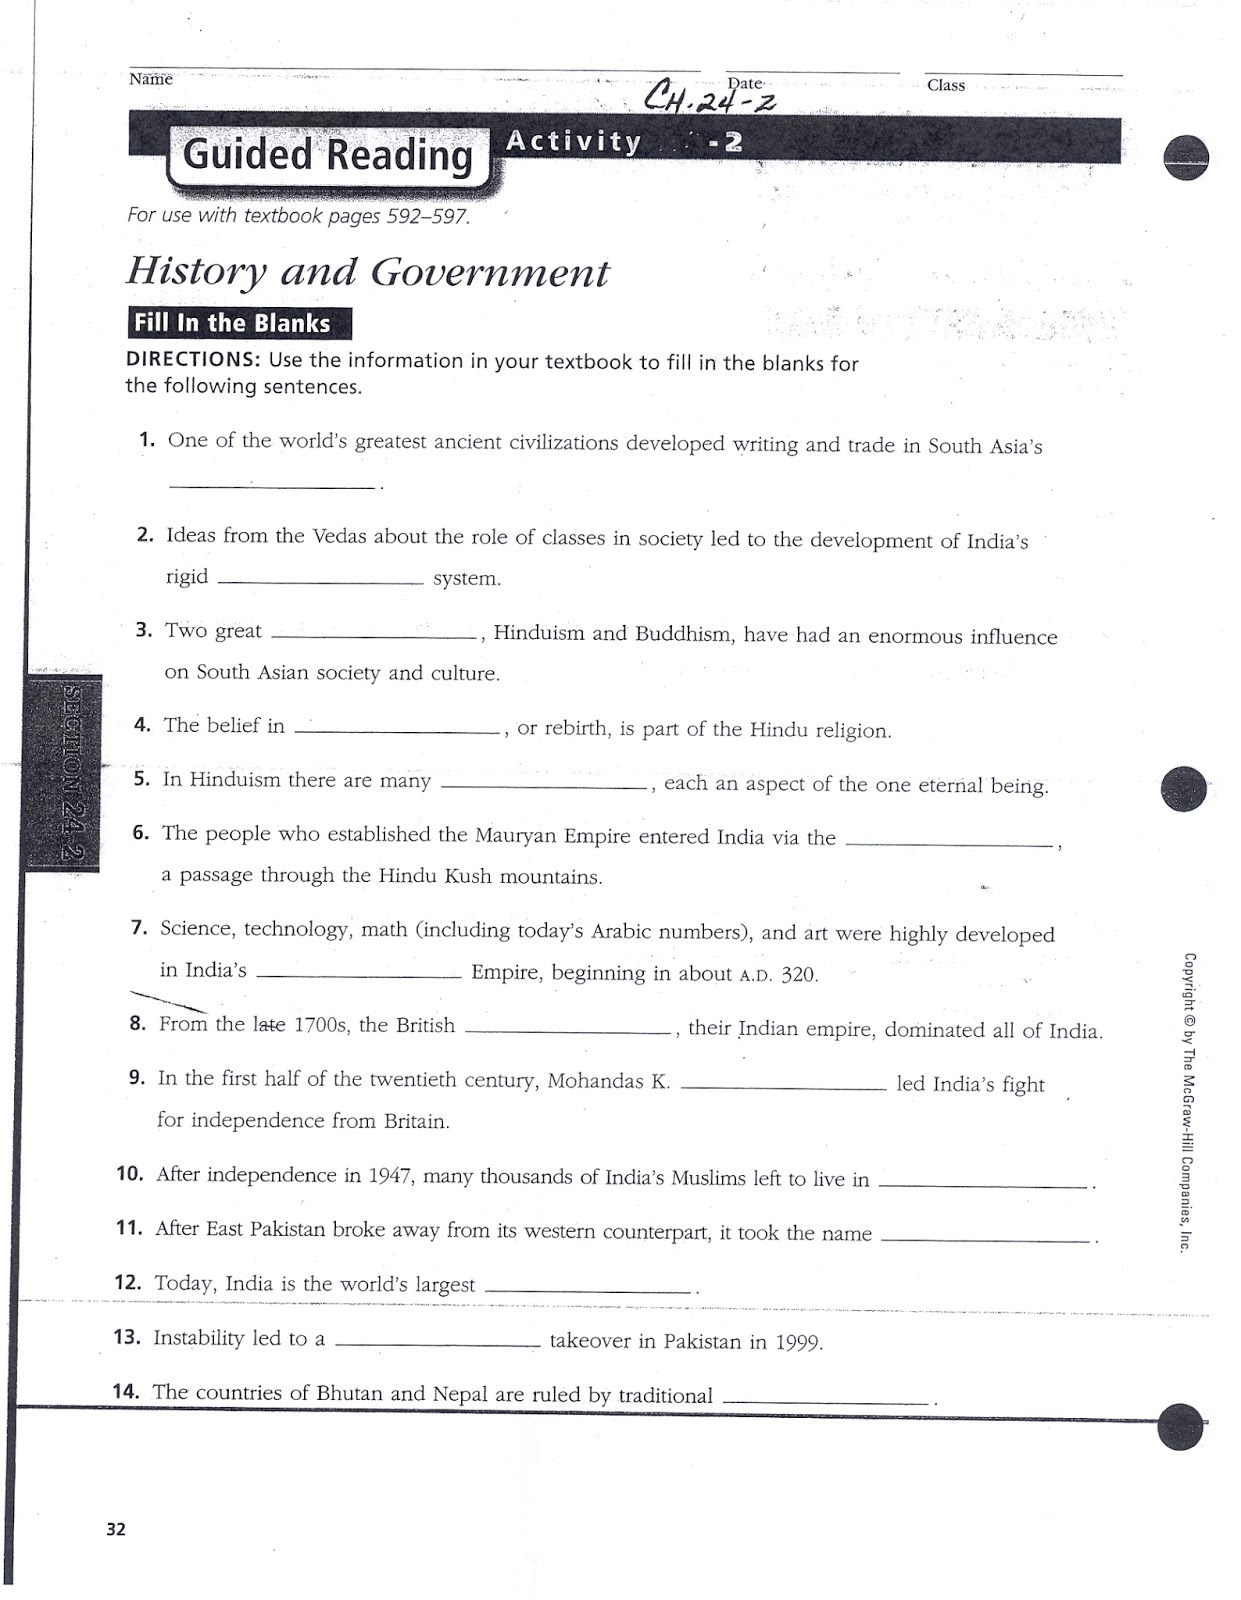 mr e s world geography page march 2018 rh acewg blogspot com guided reading 24-2 serving localities guided reading activity 24-2 world history